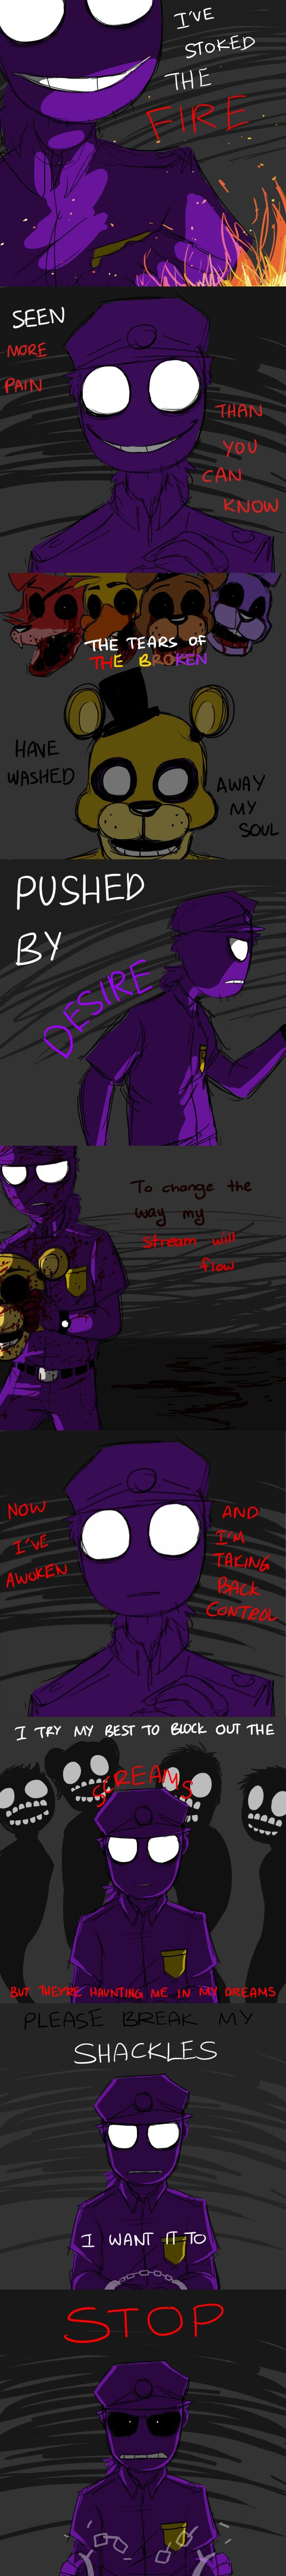 This is so cool yet creepy. I love FNAF so much.